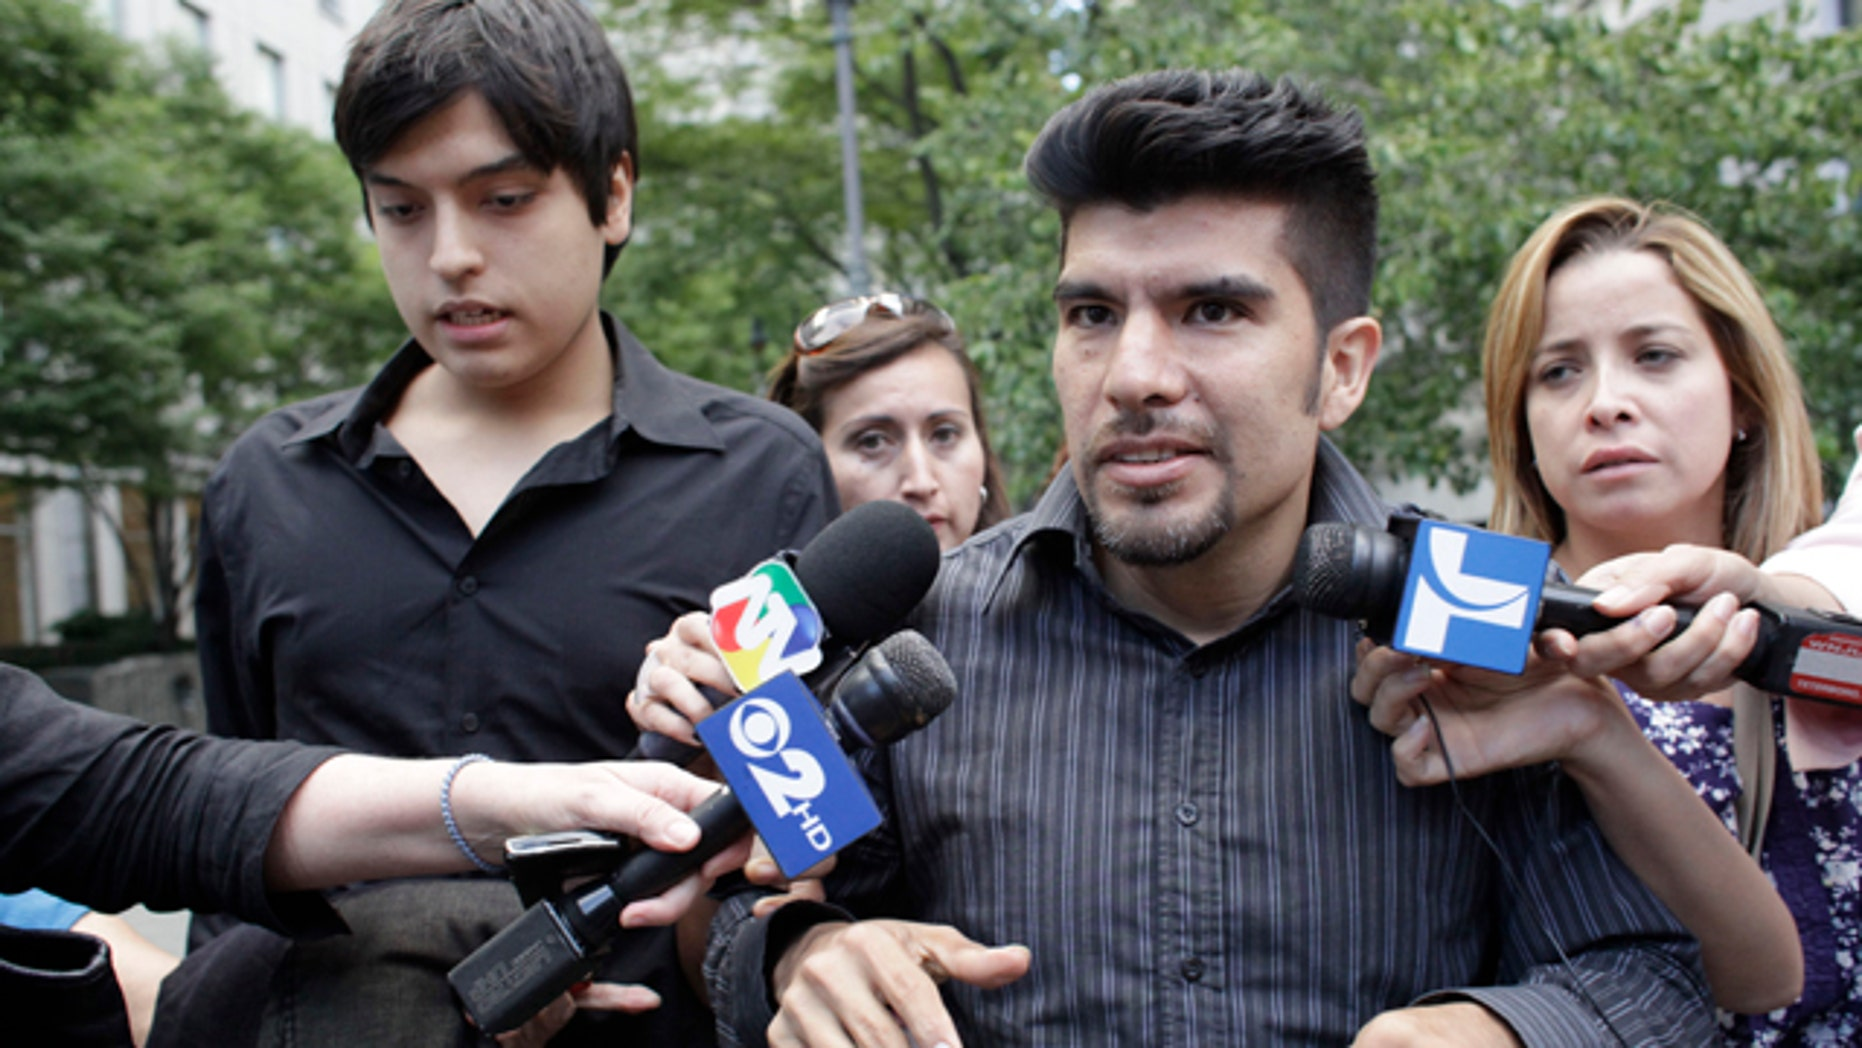 Juan Jose Lazaro, left, and Waldo Mariscal, have been left in the lurch after their mother, Vicky Pelaez, was deported to Russia. (AP)